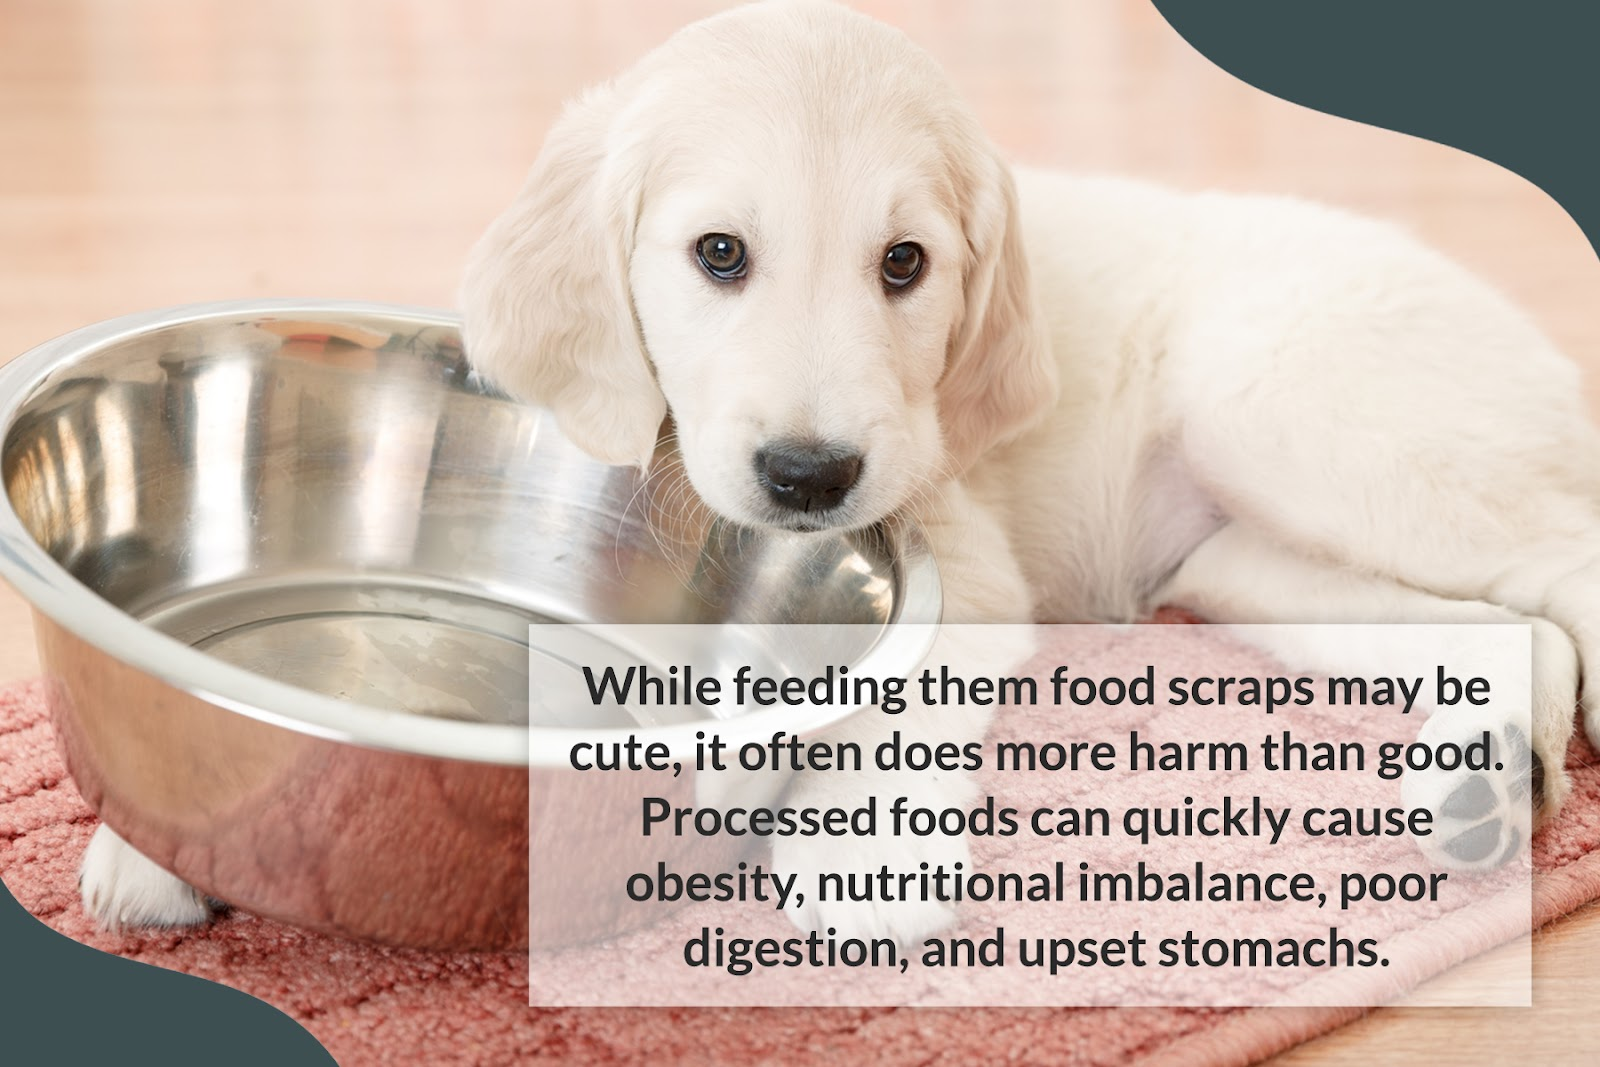 processed foods leads to obesity in dogs